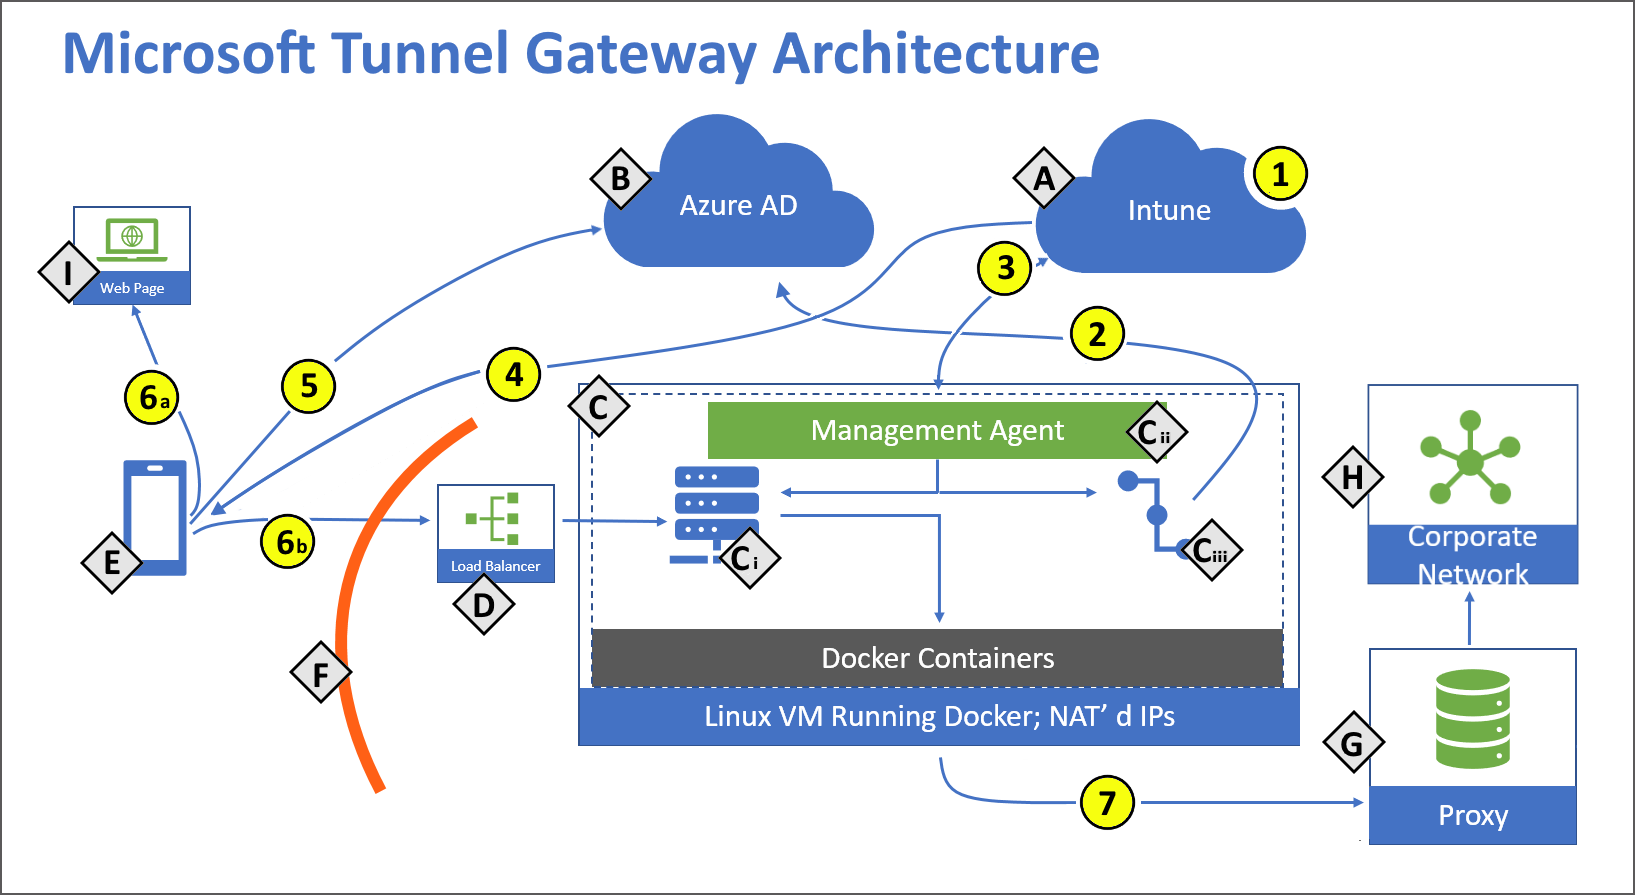 Drawing of the Microsoft Tunnel Gateway architecture